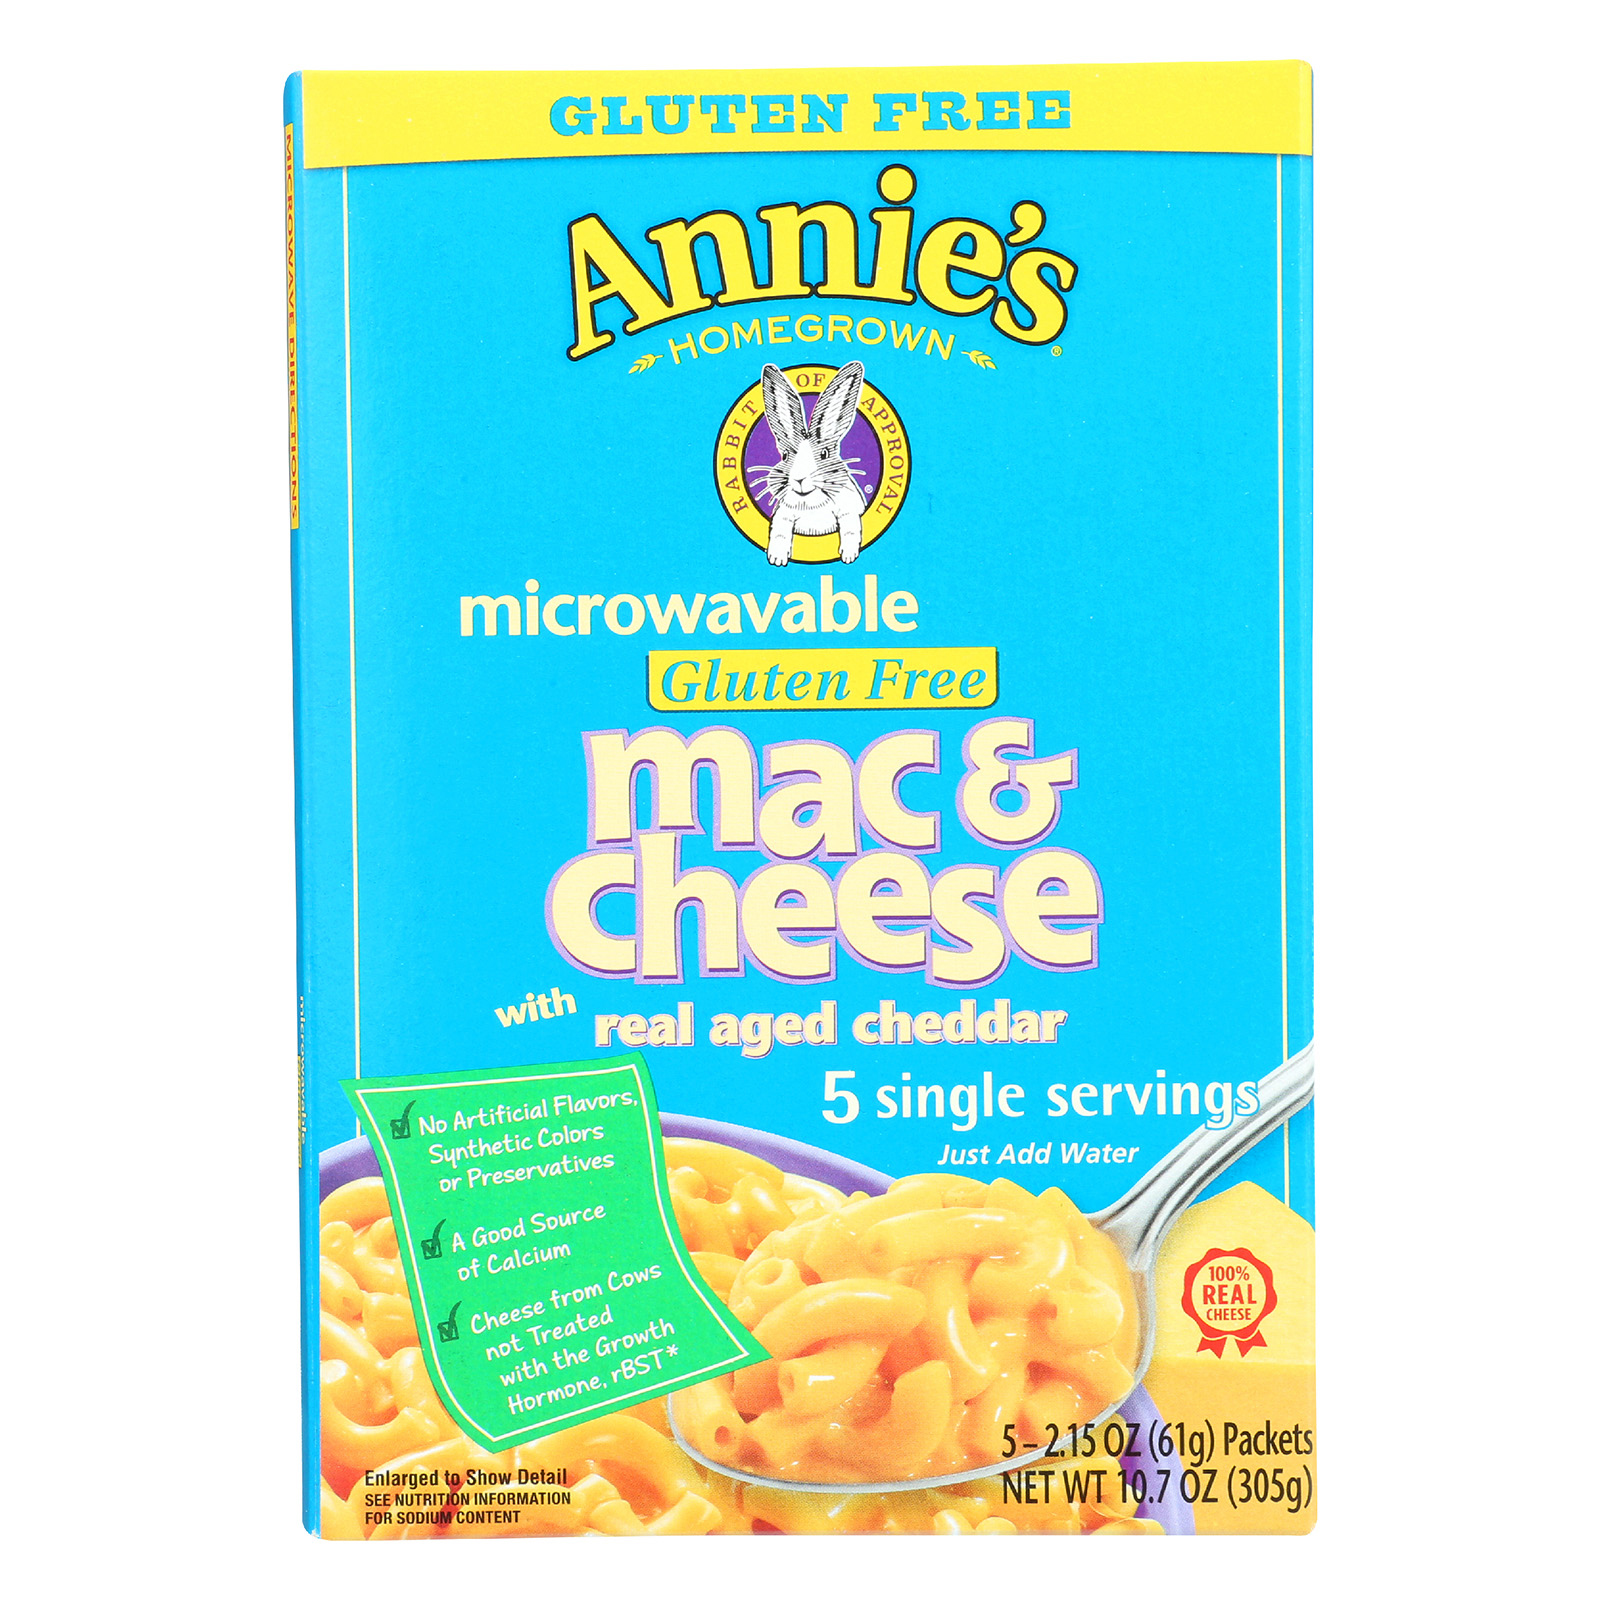 Annie's Homegrown Gluten Free Microwavable Mac and Cheese with Real Aged Cheddar - Case of 6 - 10.7 oz.